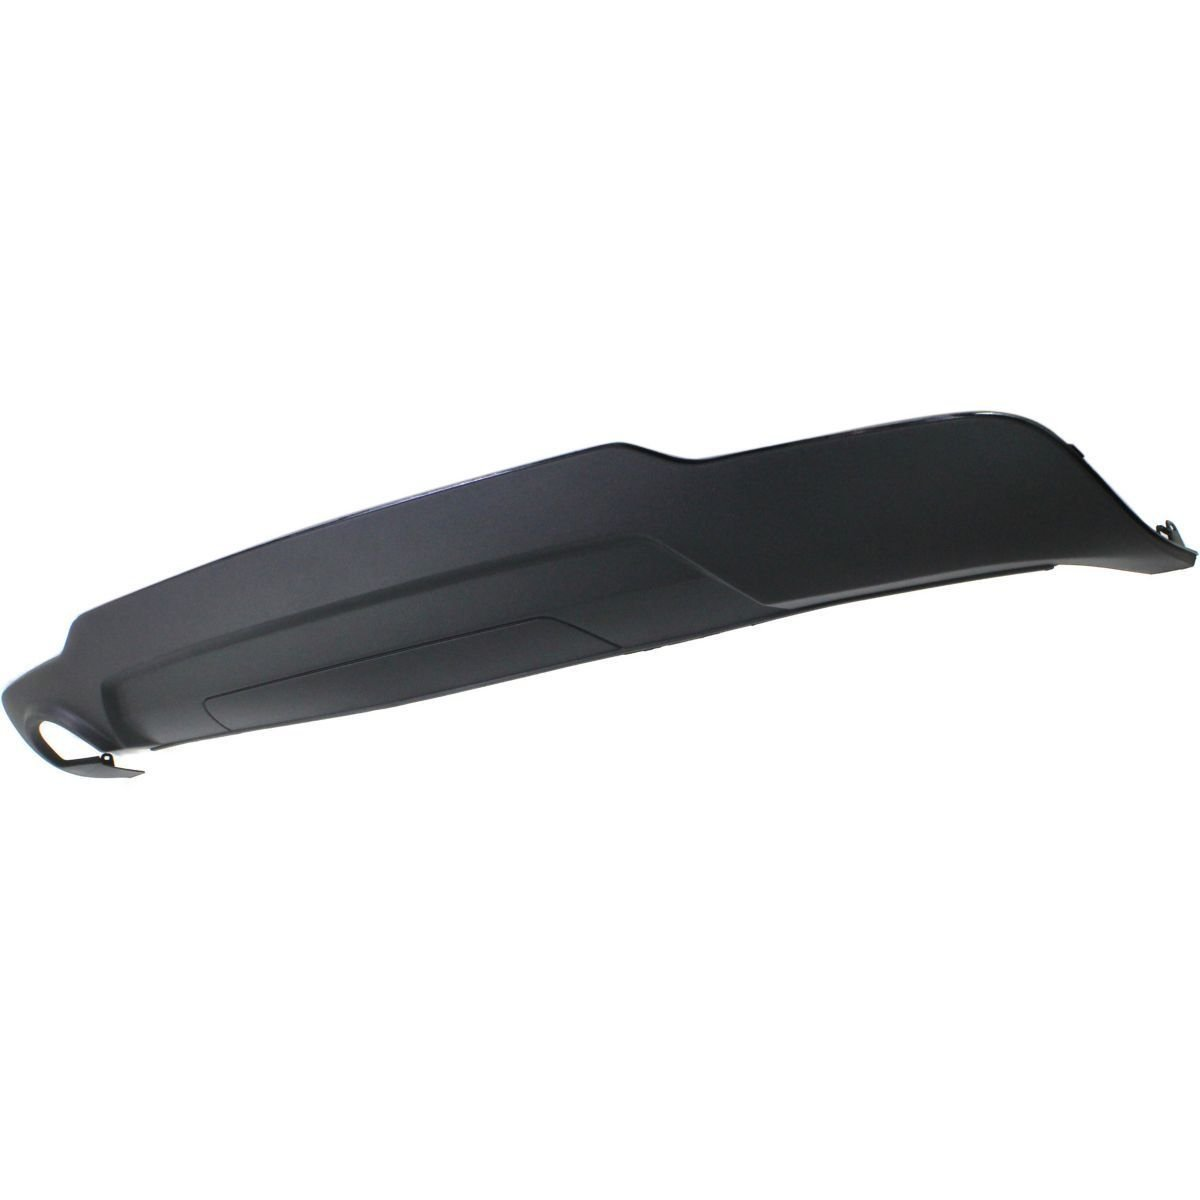 New Air Dam Deflector Valance Lower Front Primered Chevy GM1007109 25855329 Diften 199-A1057-X01